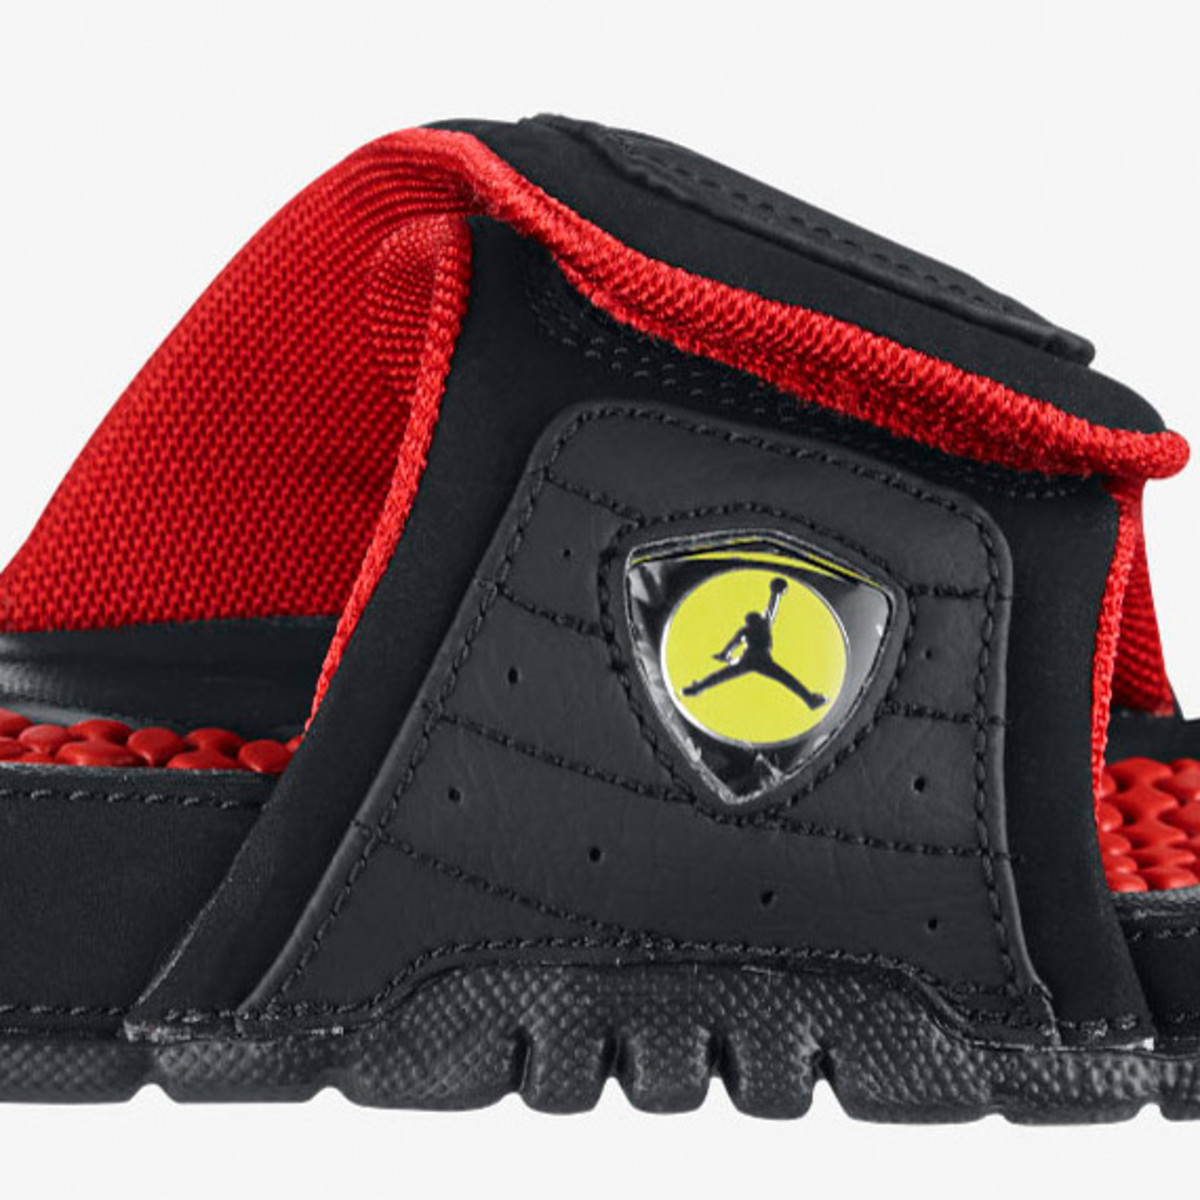 reputable site f2004 dde26 As the end of summer 2014 approaches, Jordan Brand is wrapping up the  season in a memorable matter with its Jordan Hydro XIV Retro Slide.